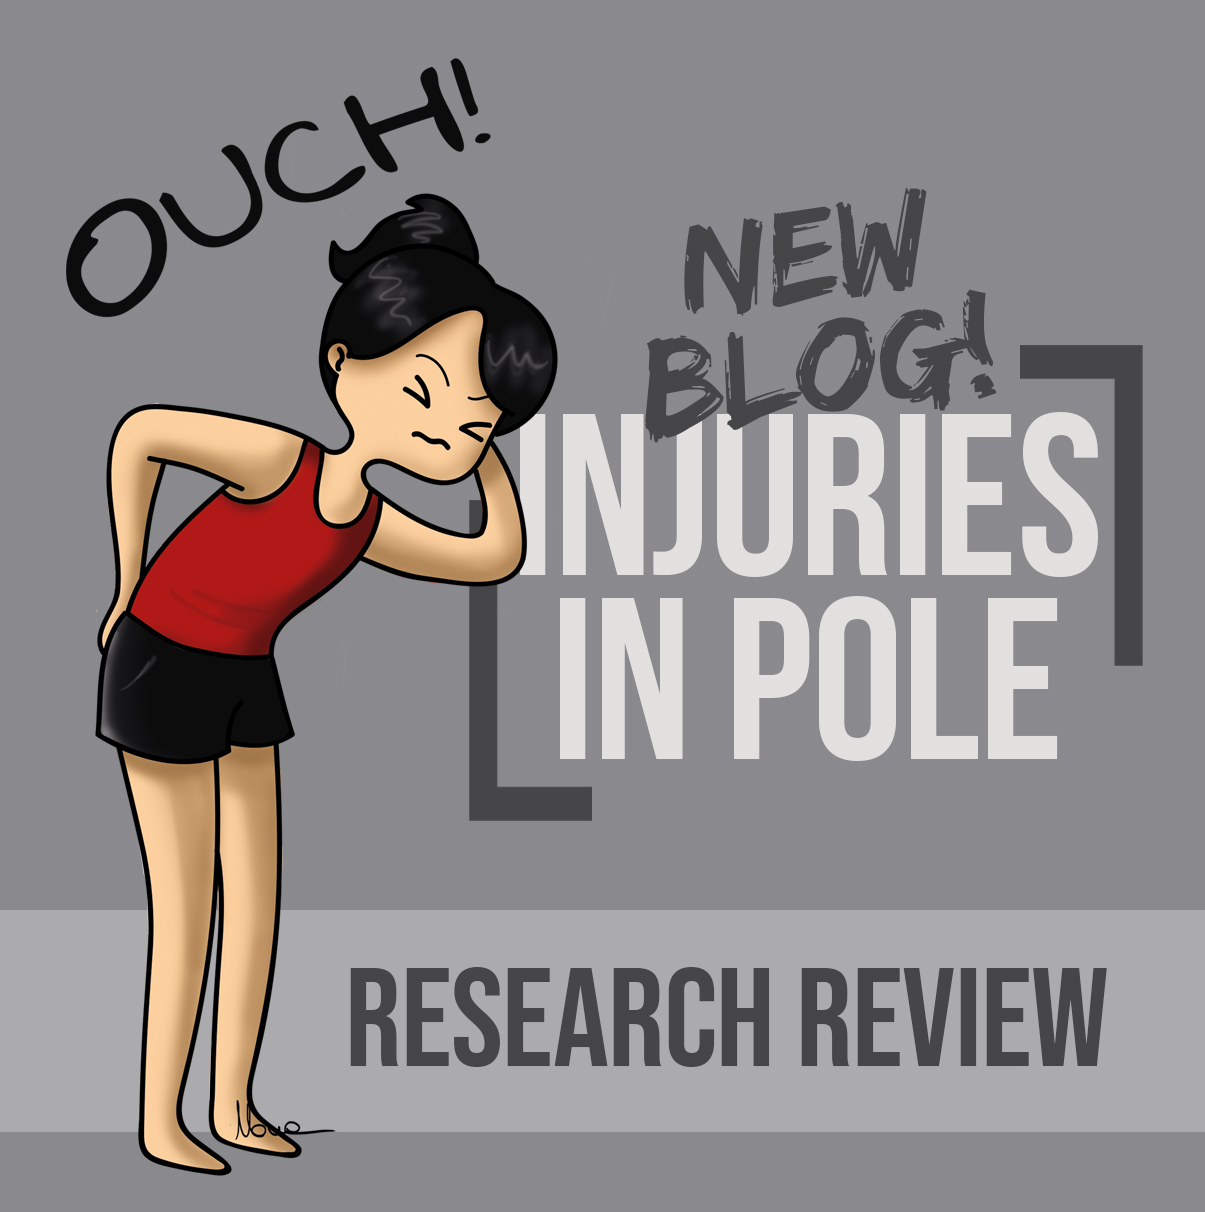 Mo skills, mo problems? Pole dance injury research [round up]